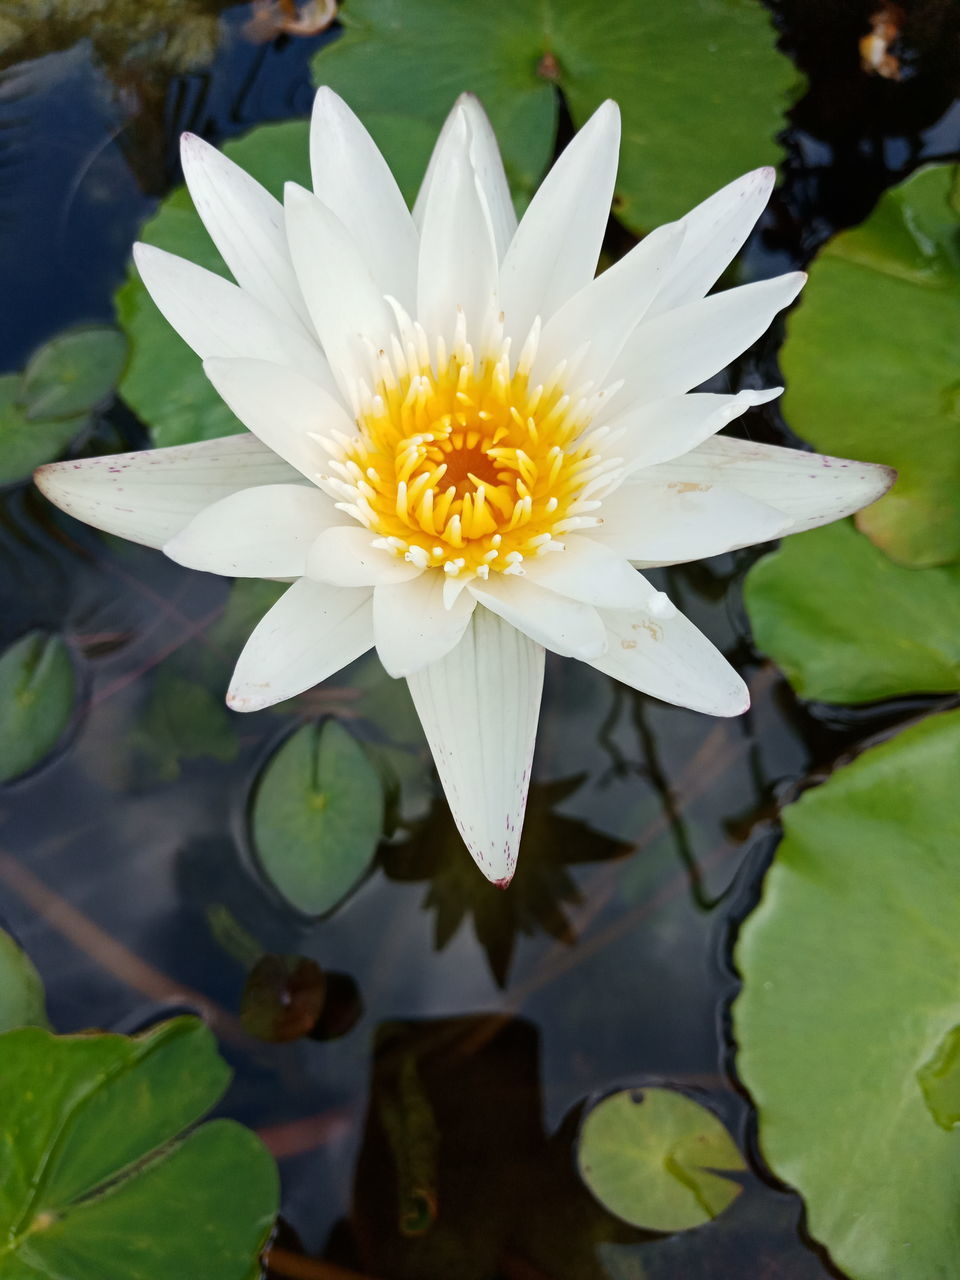 flower, flowering plant, water lily, vulnerability, plant, fragility, freshness, water, lake, petal, leaf, beauty in nature, growth, close-up, inflorescence, plant part, flower head, nature, lotus water lily, floating on water, no people, pollen